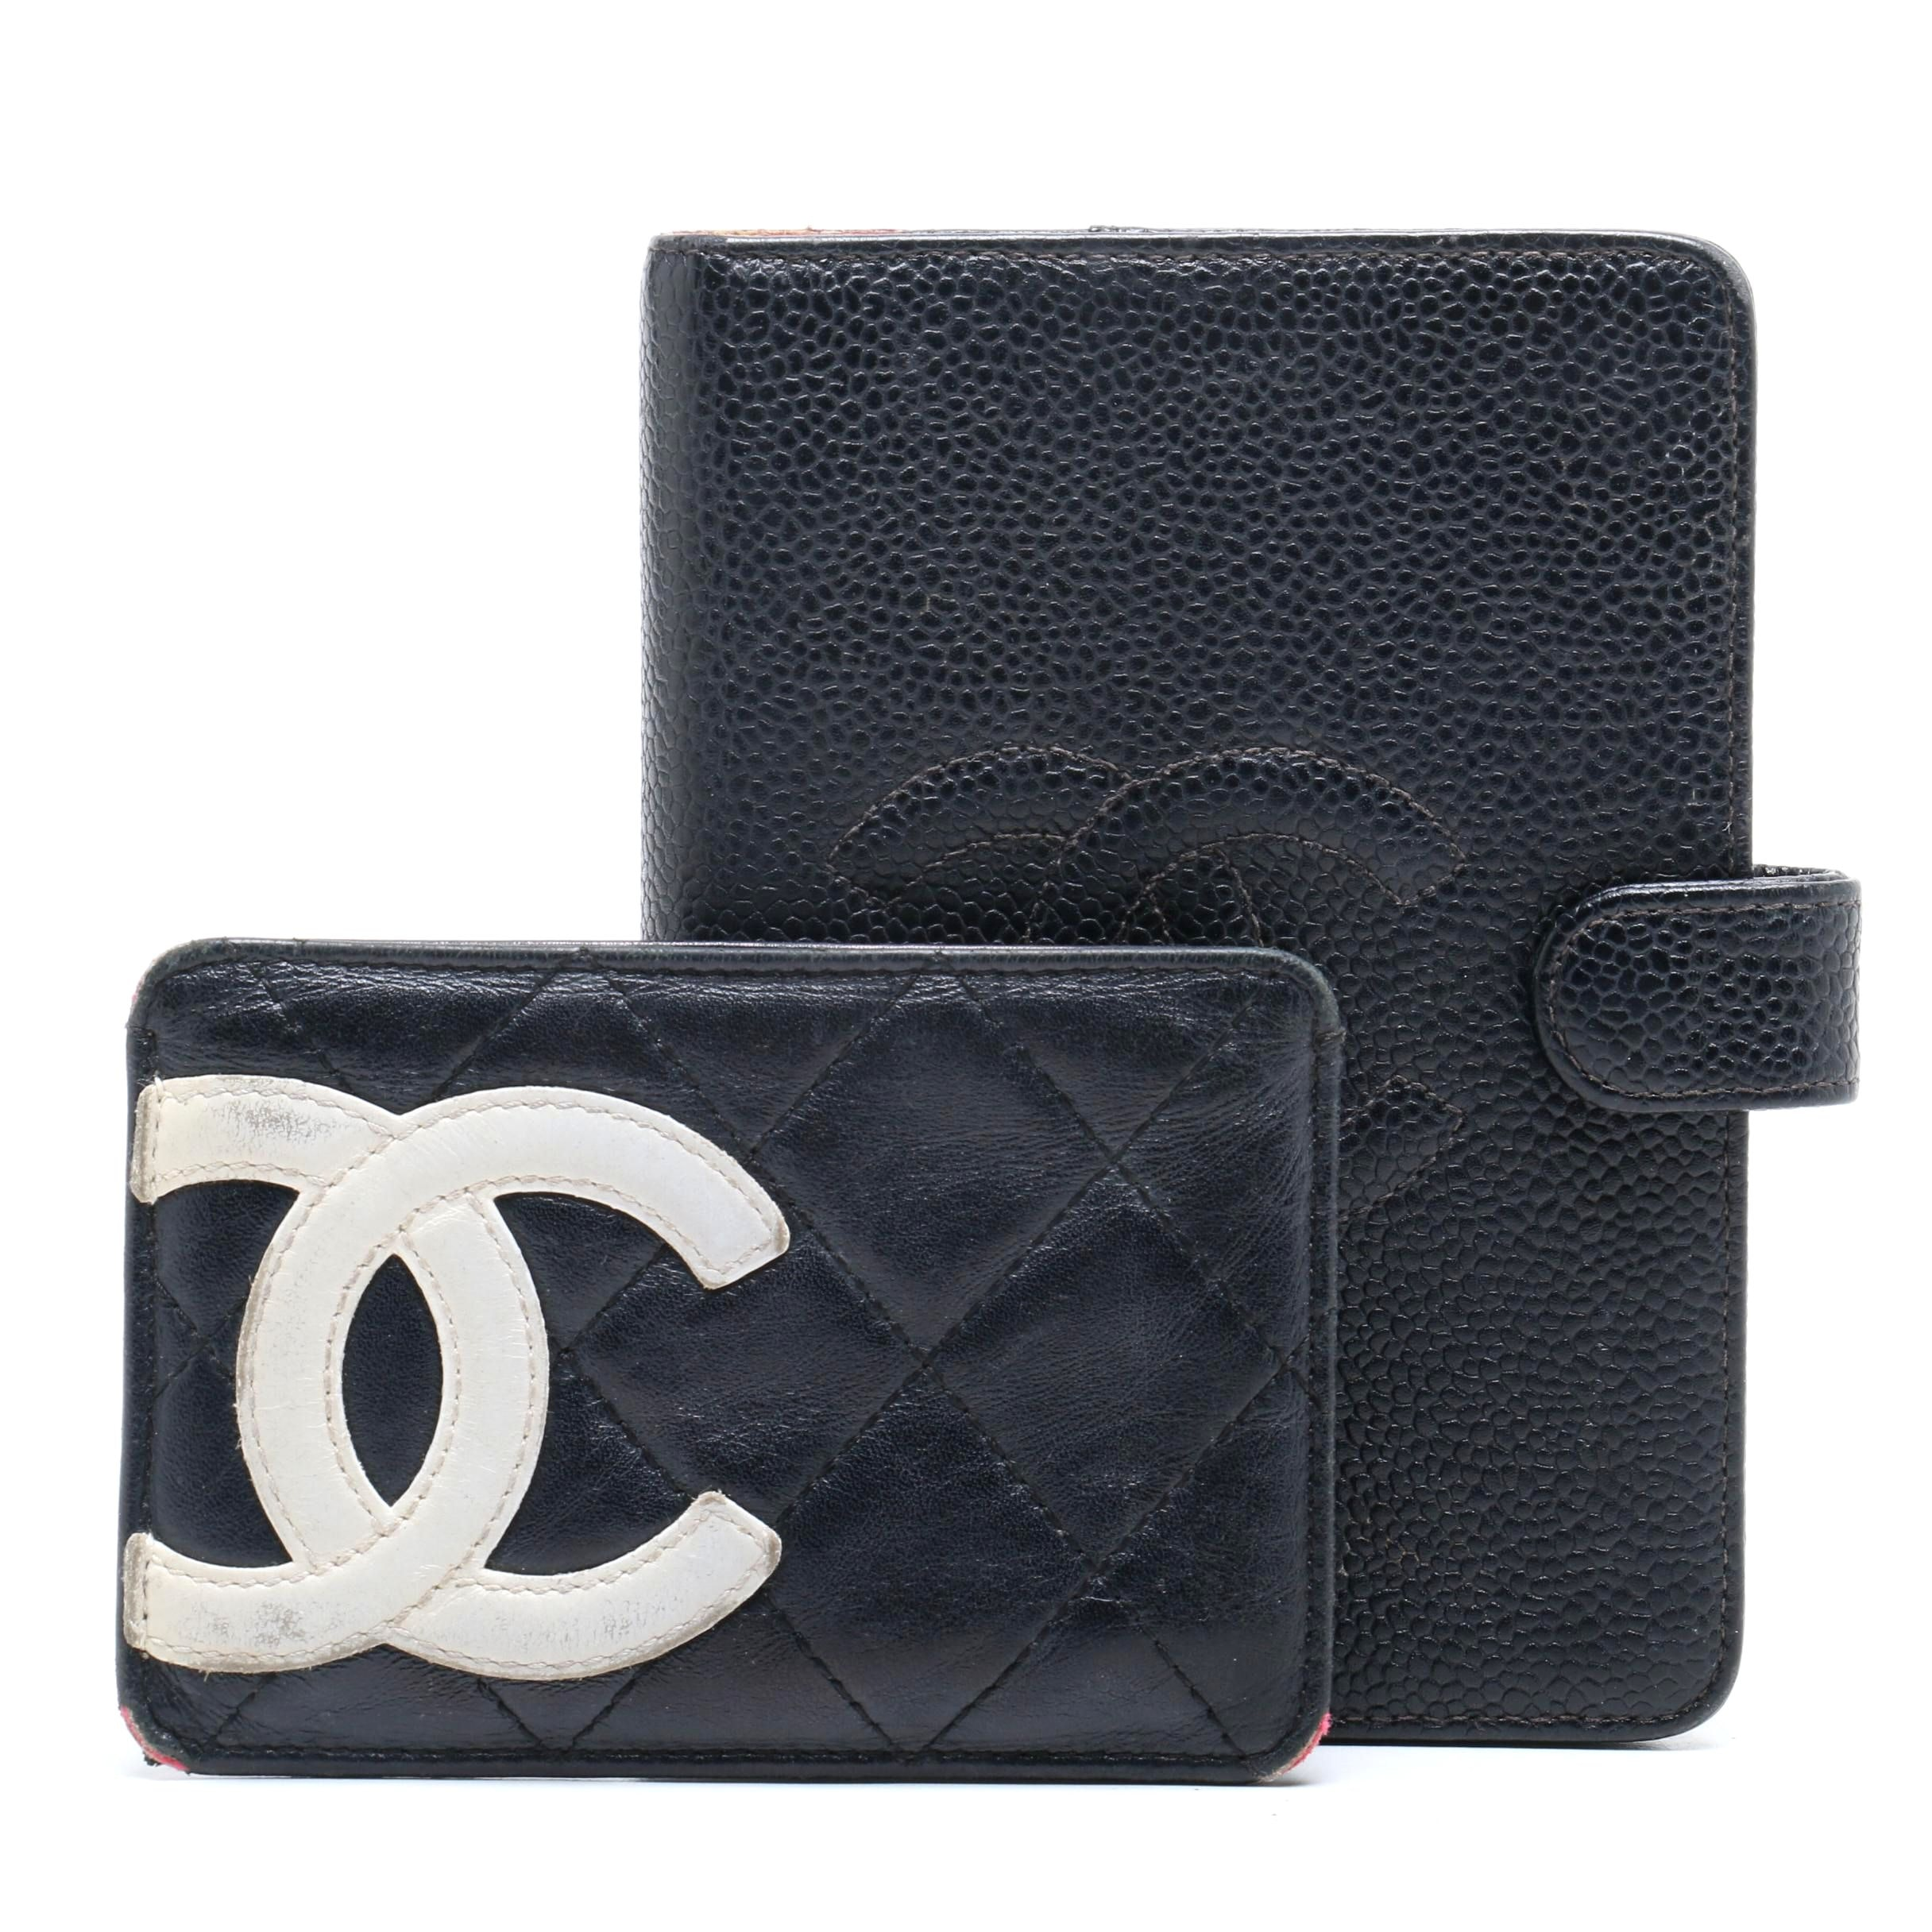 Chanel Black Caviar Leather Agenda Book and Quilted Lambskin Cardholder